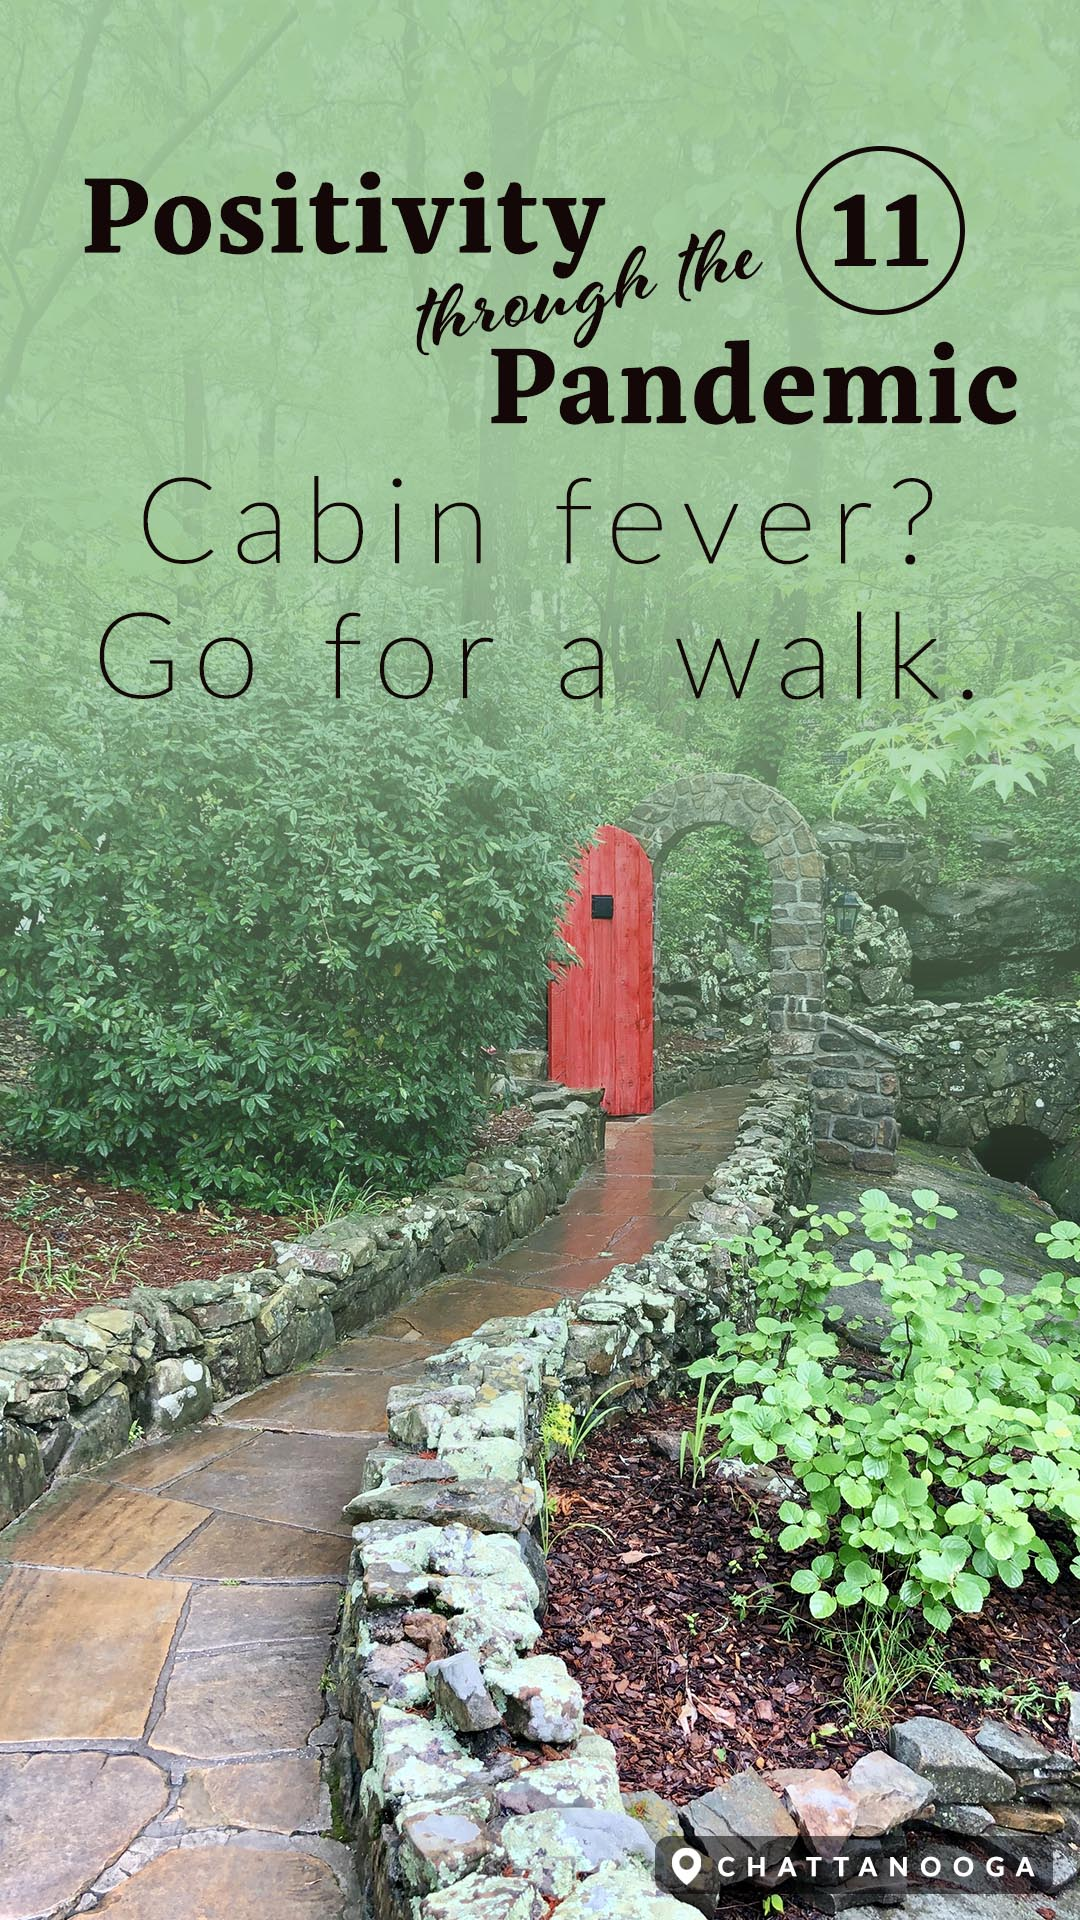 Positivity through the Pandemic #11: Cabin fever go for a walk